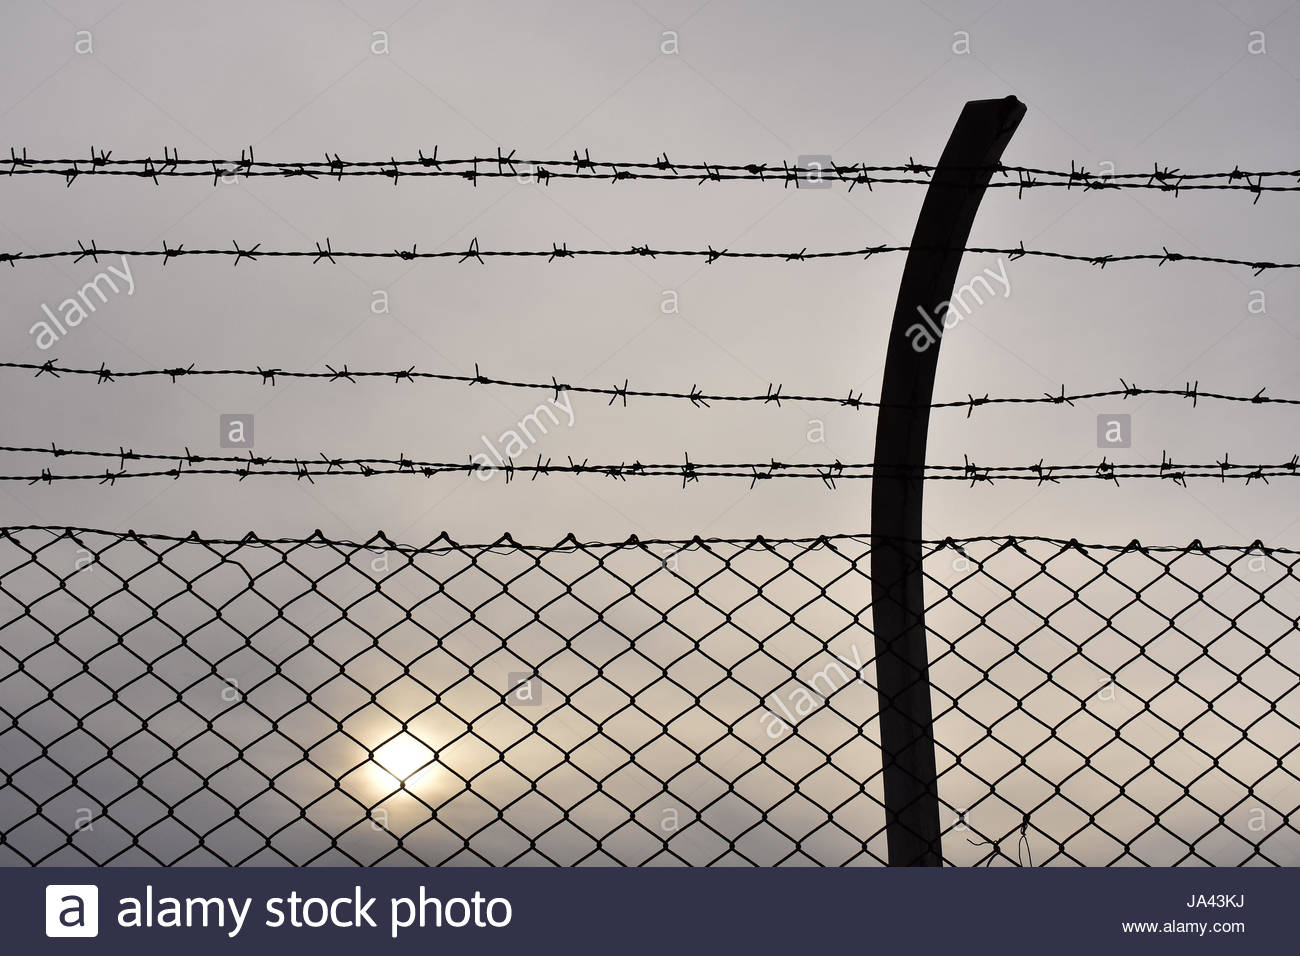 Barbed wire fence detail - Stock Image